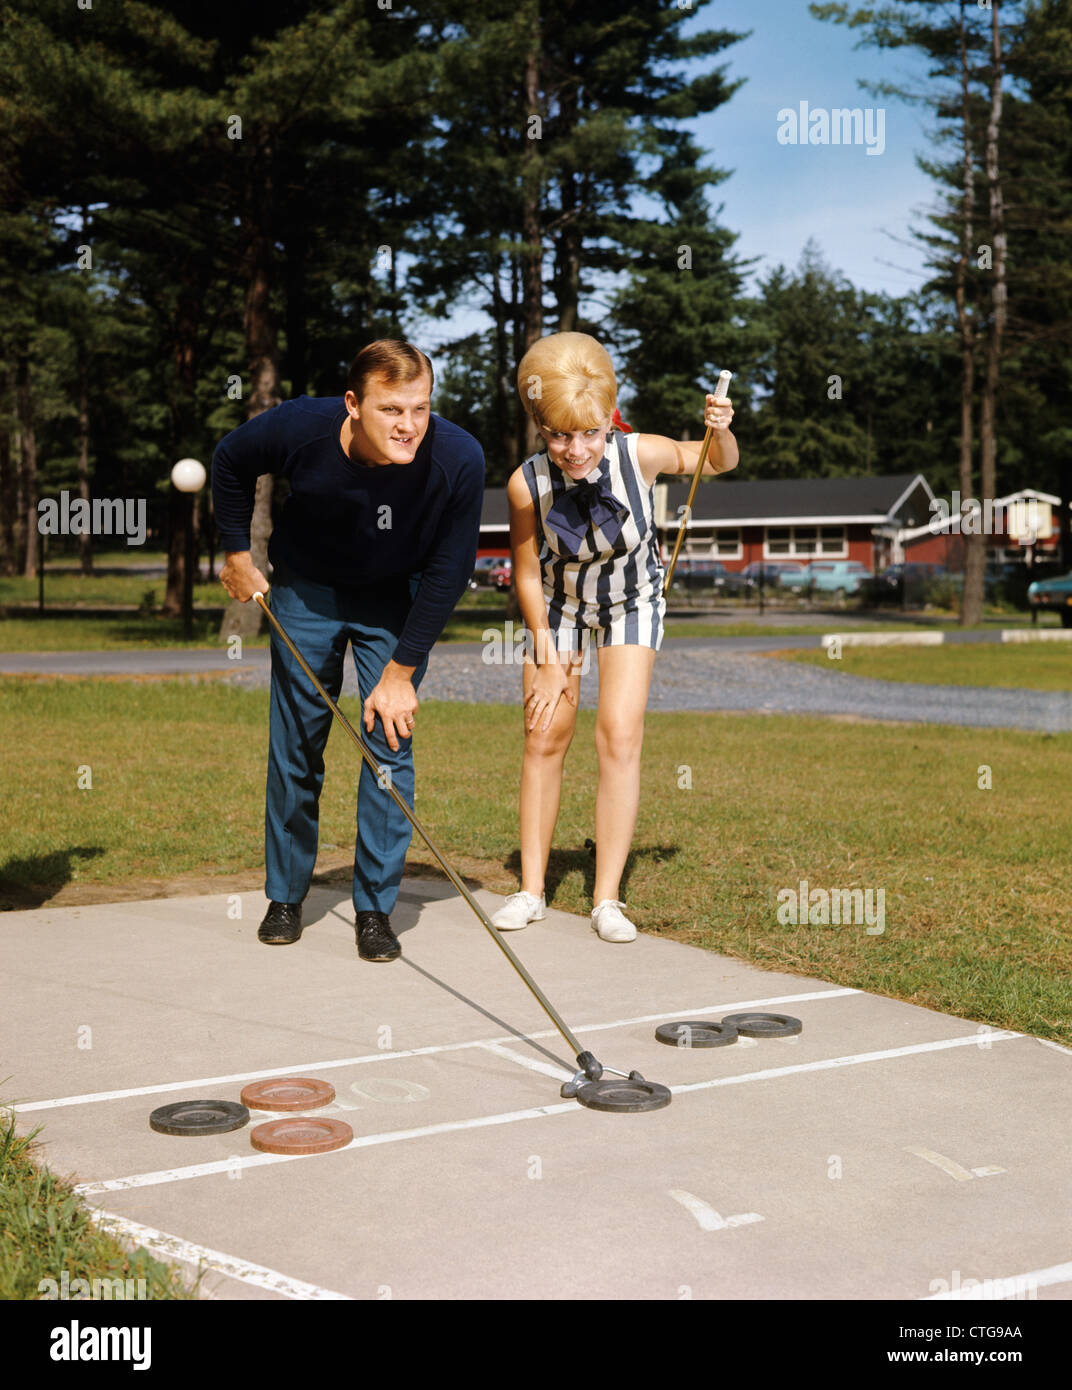 1960s COUPLE PLAYING SHUFFLEBOARD POCONO MOUNTAIN RESORT WOMAN BLONDE BOUFFANT TEASED HAIR FASHION RETRO - Stock Image